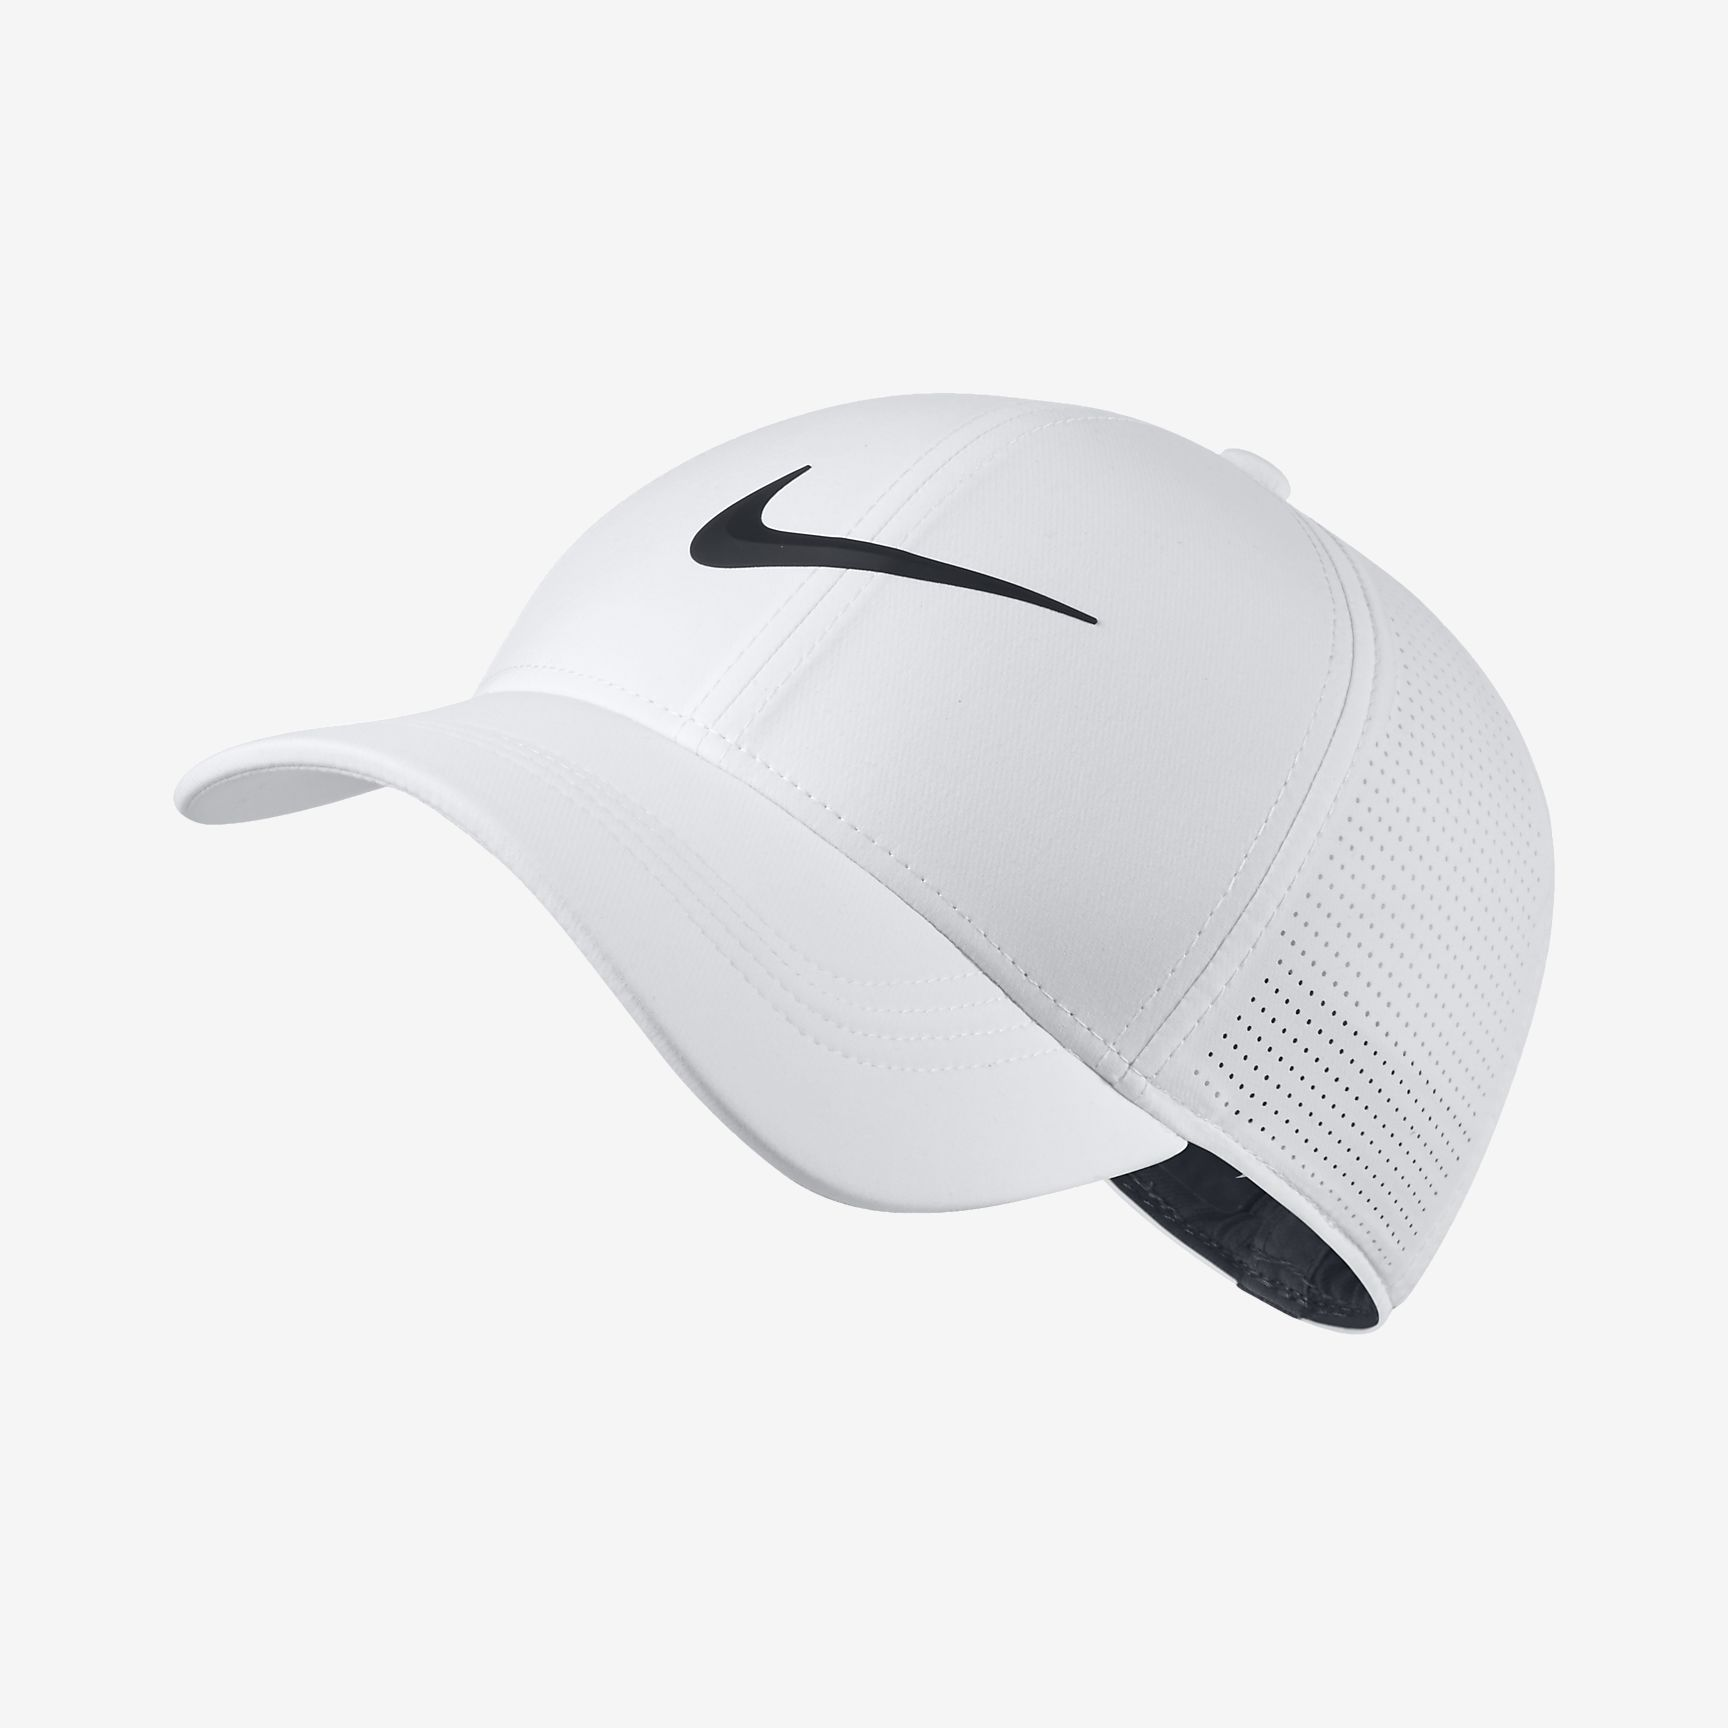 NEW 2018 Nike Aerobill L91 Perforated Statement White Fitted L XL Hat Cap -  Walmart.com 067be9d60388